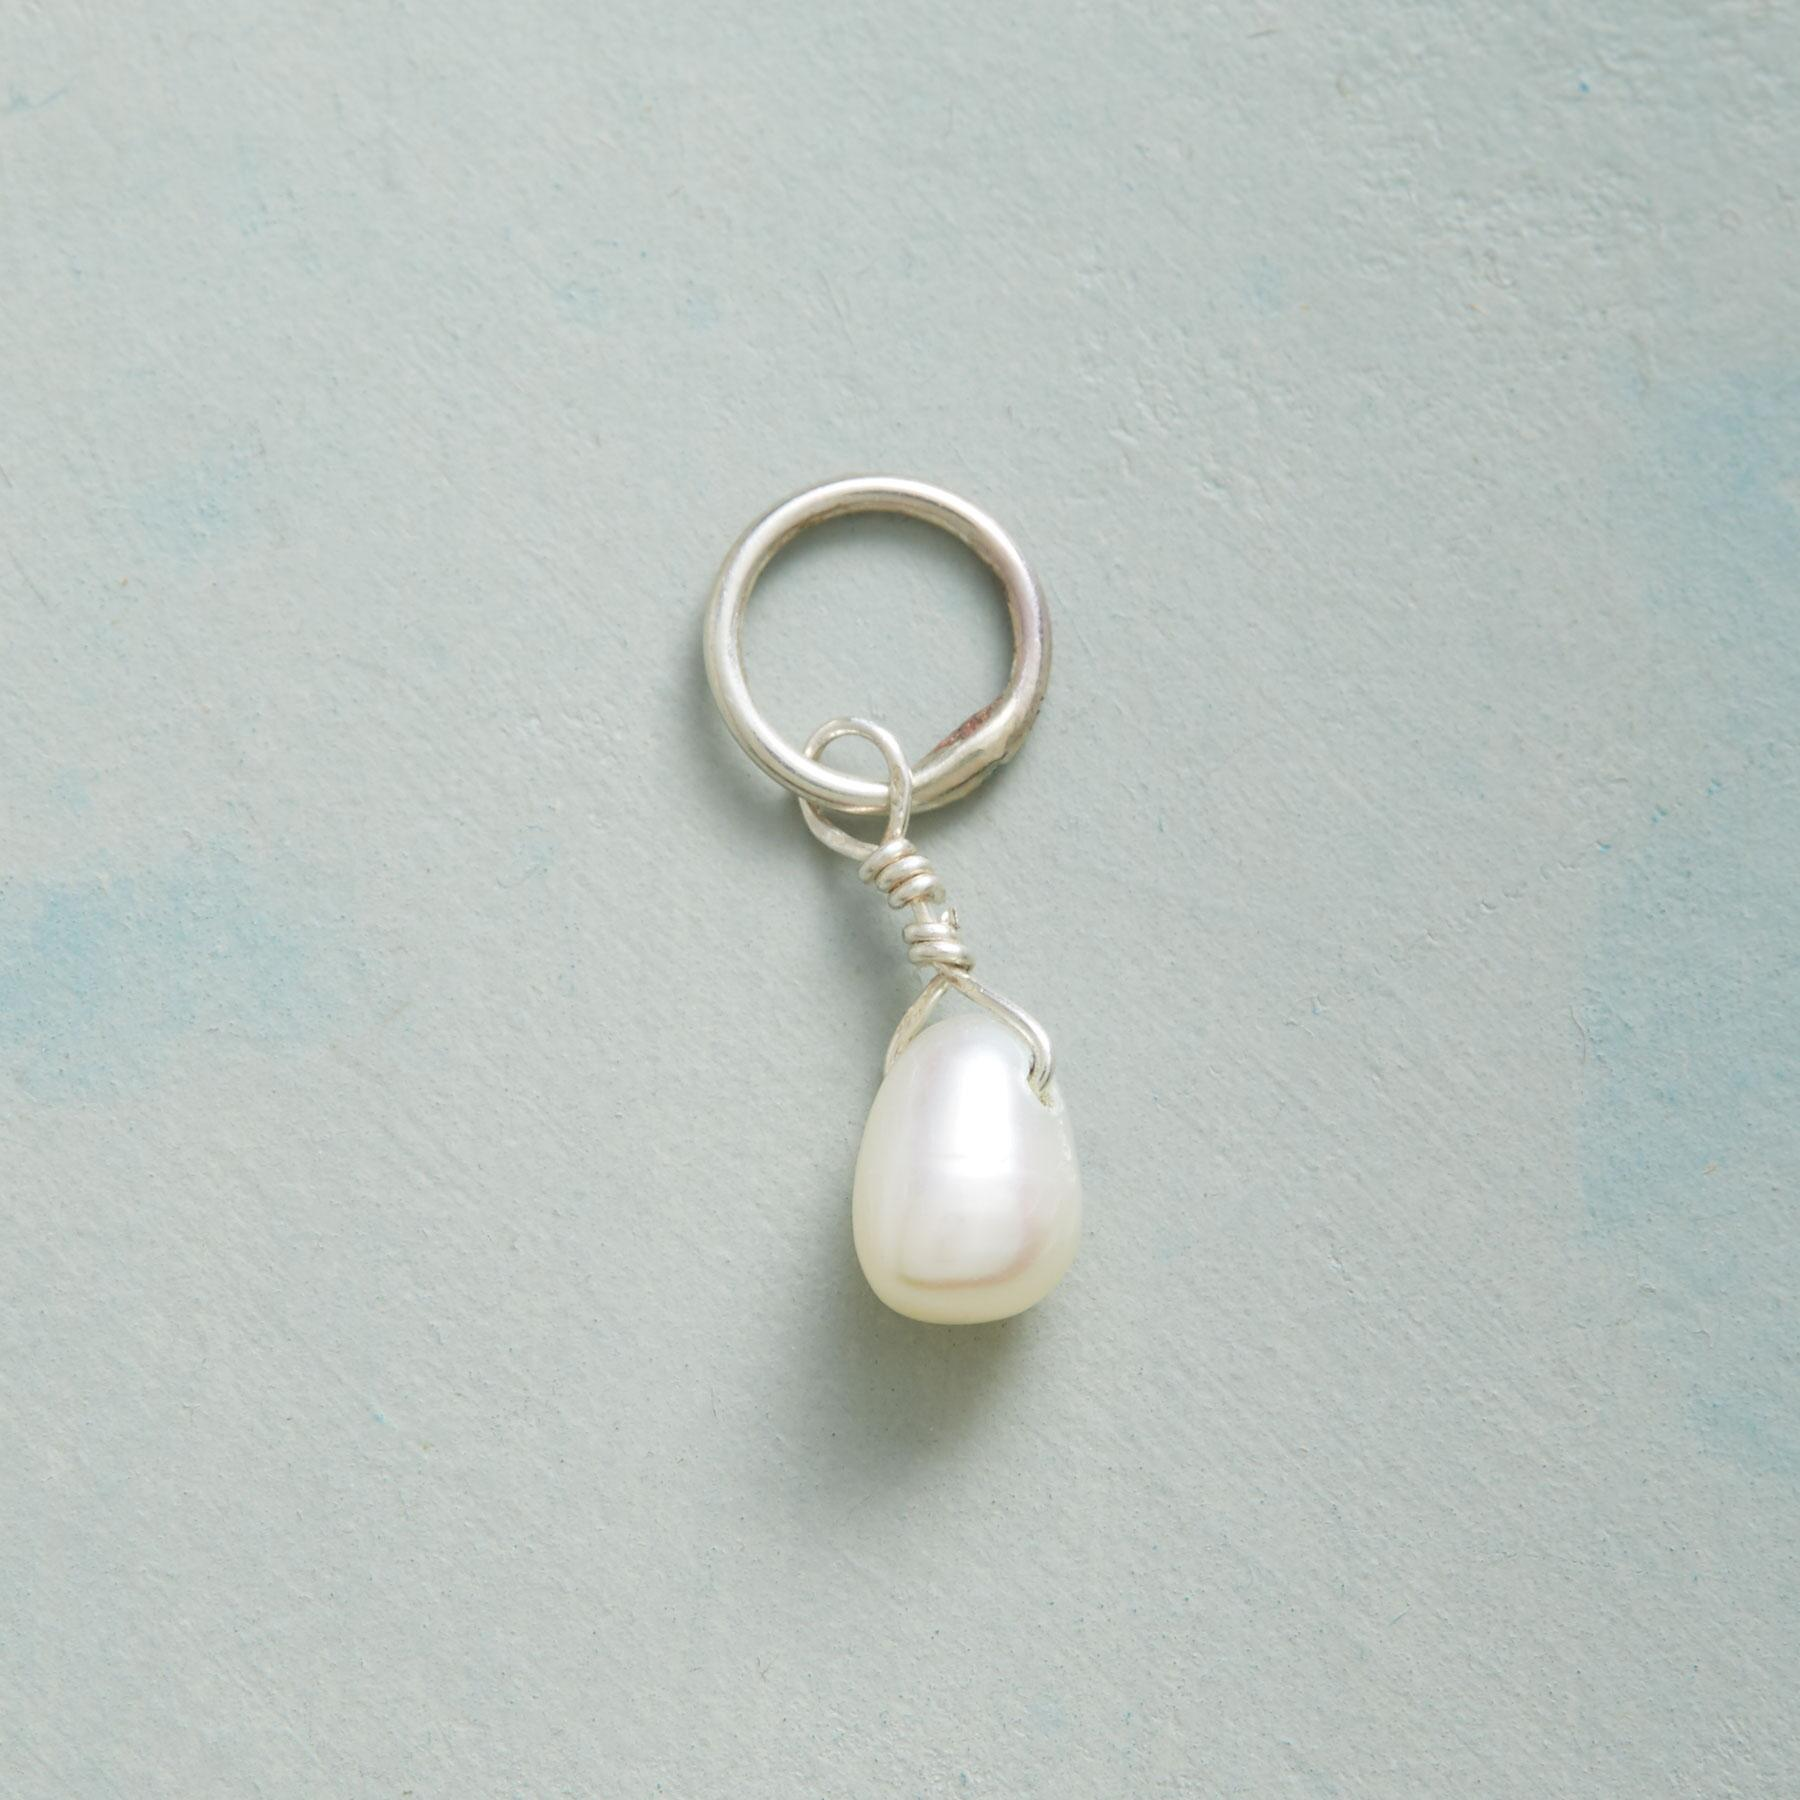 STERLING SILVER SMALL WONDER BIRTHSTONE CHARMS: View 1